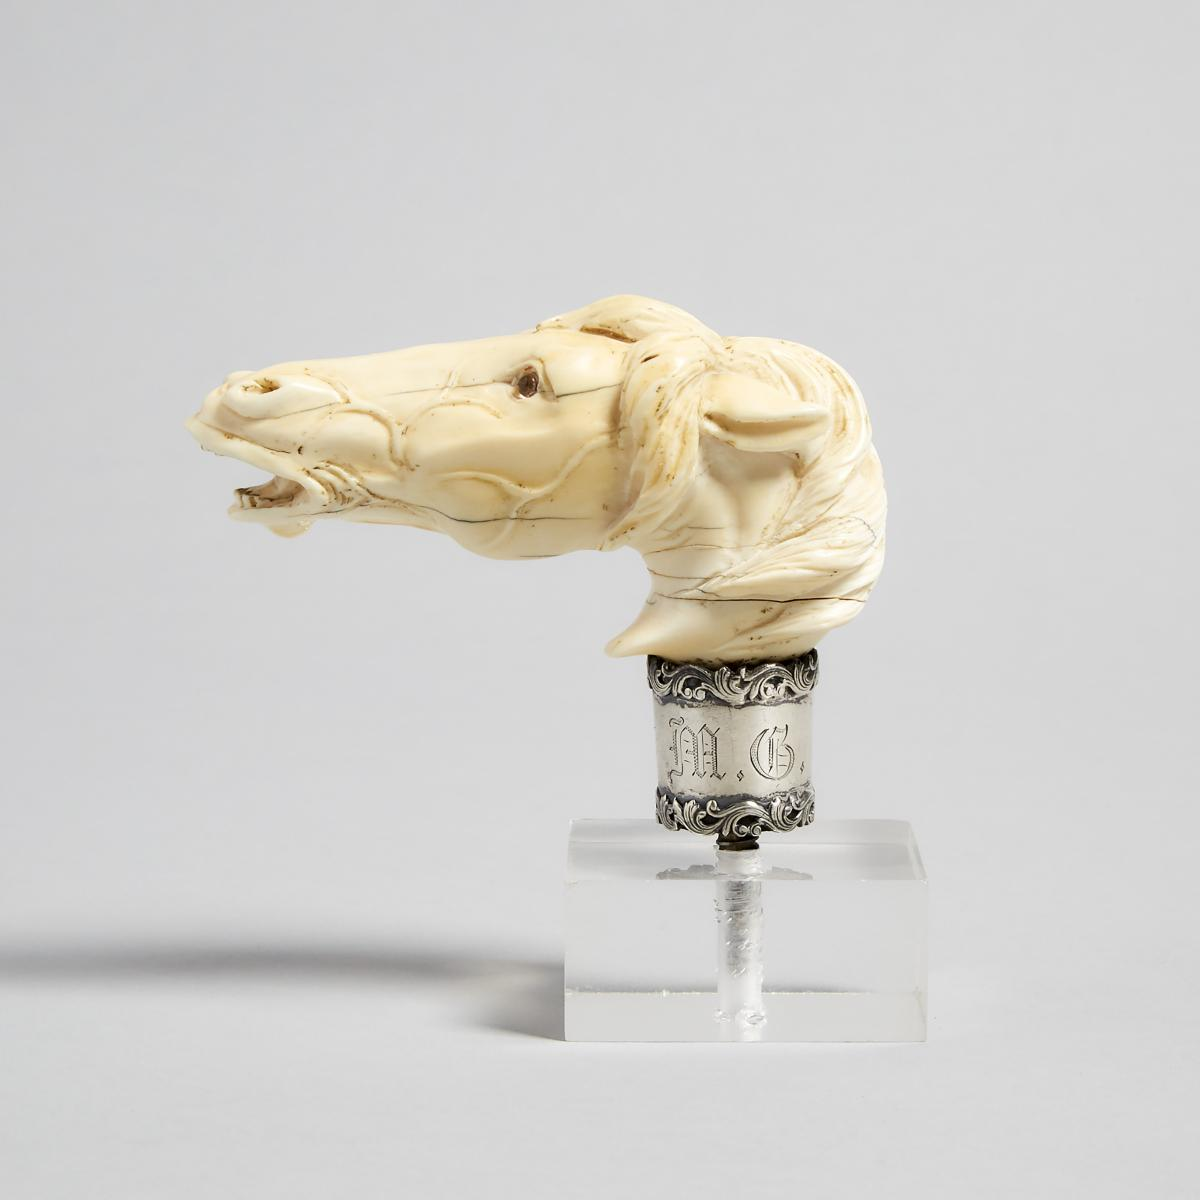 American Silver Mounted Ivory Horse Head Form Walking Stick Handle, c.1900, length 4 in — 10.2 cm - Image 2 of 3